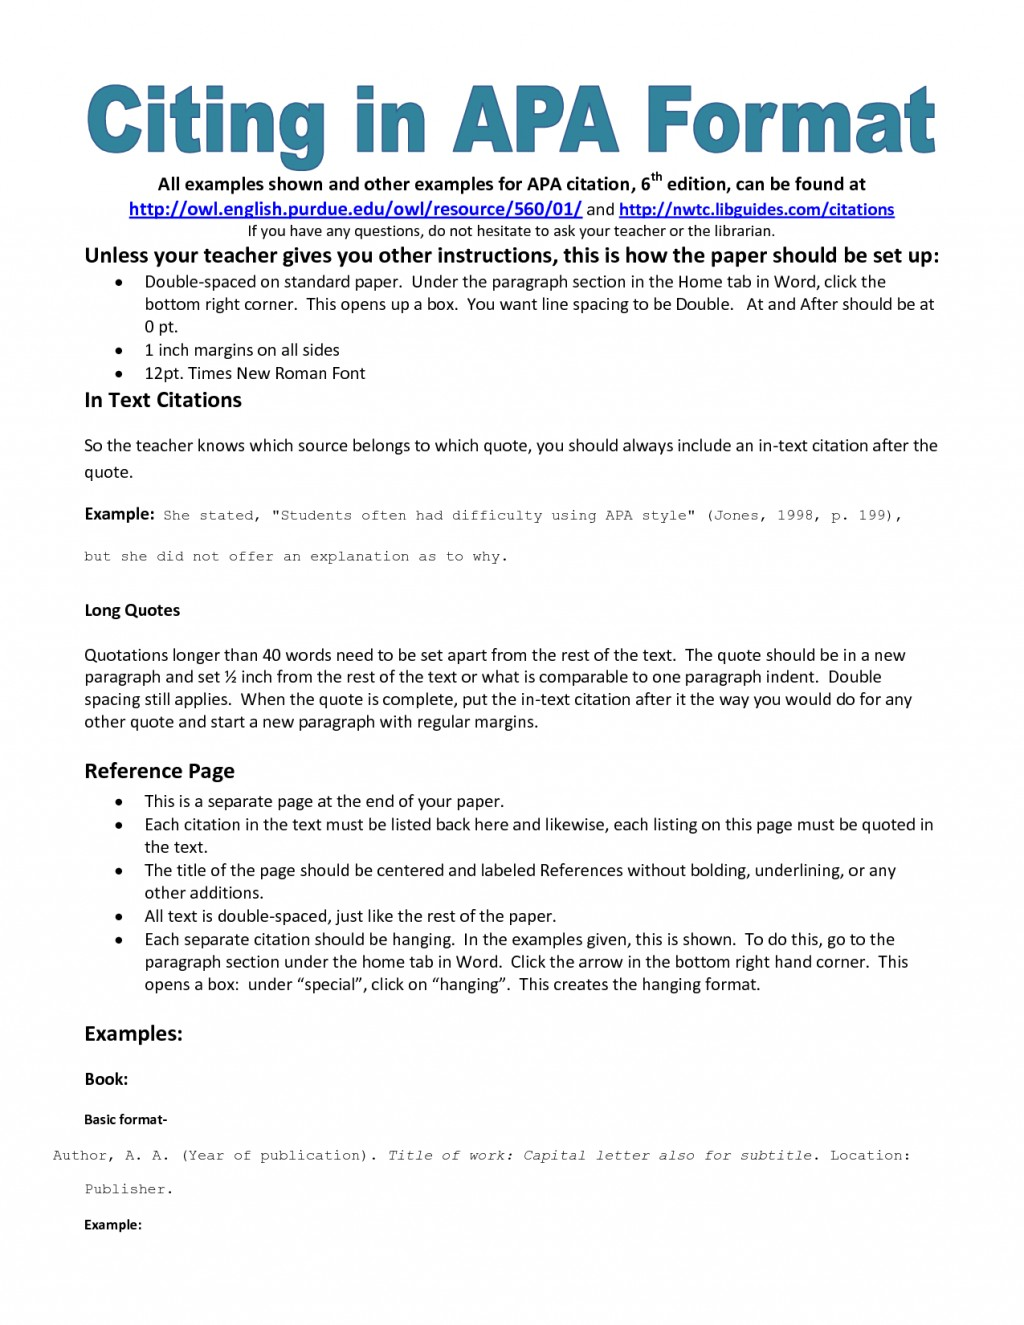 010 Apa Format Style For Research Paper Unusual Sample Papers In Writing Citing Large